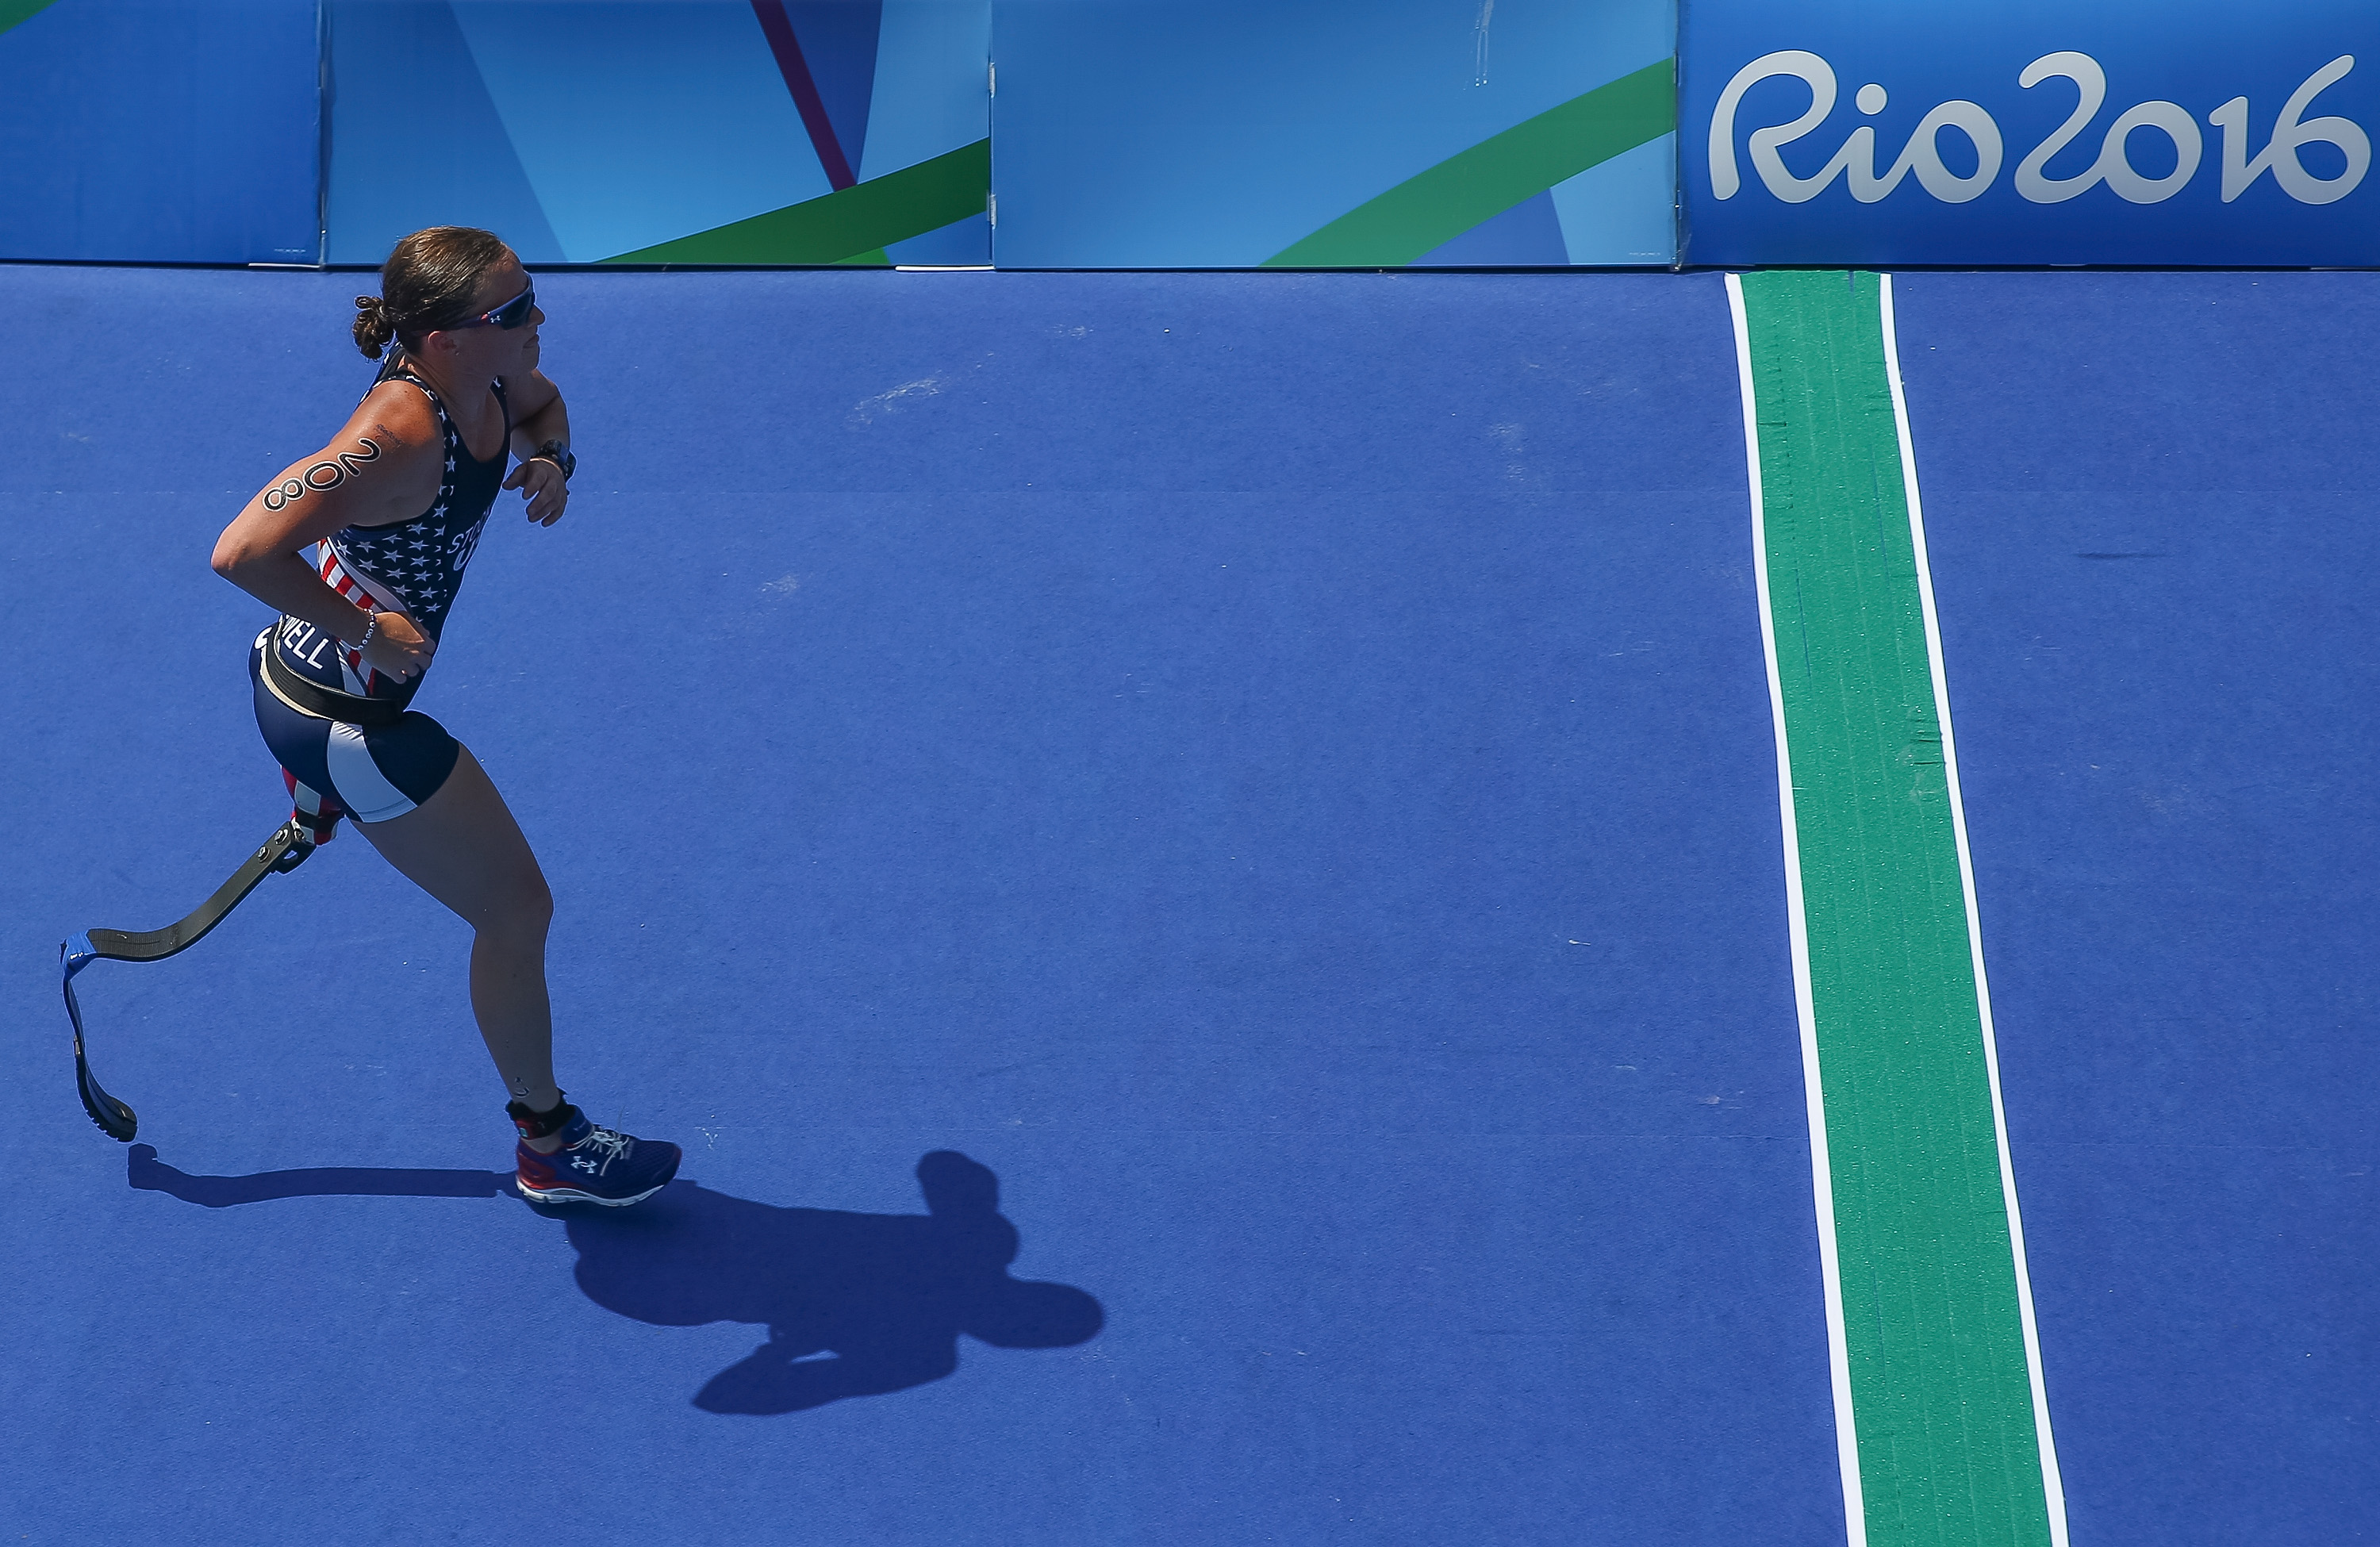 Melissa Stockwell of the United States competes in the run of the Triathlon Women's T2 at Forte de Copacabana on day 4 of the Rio 2016 Paralympic Games on September 11, 2016 in Rio de Janeiro, Brazil.